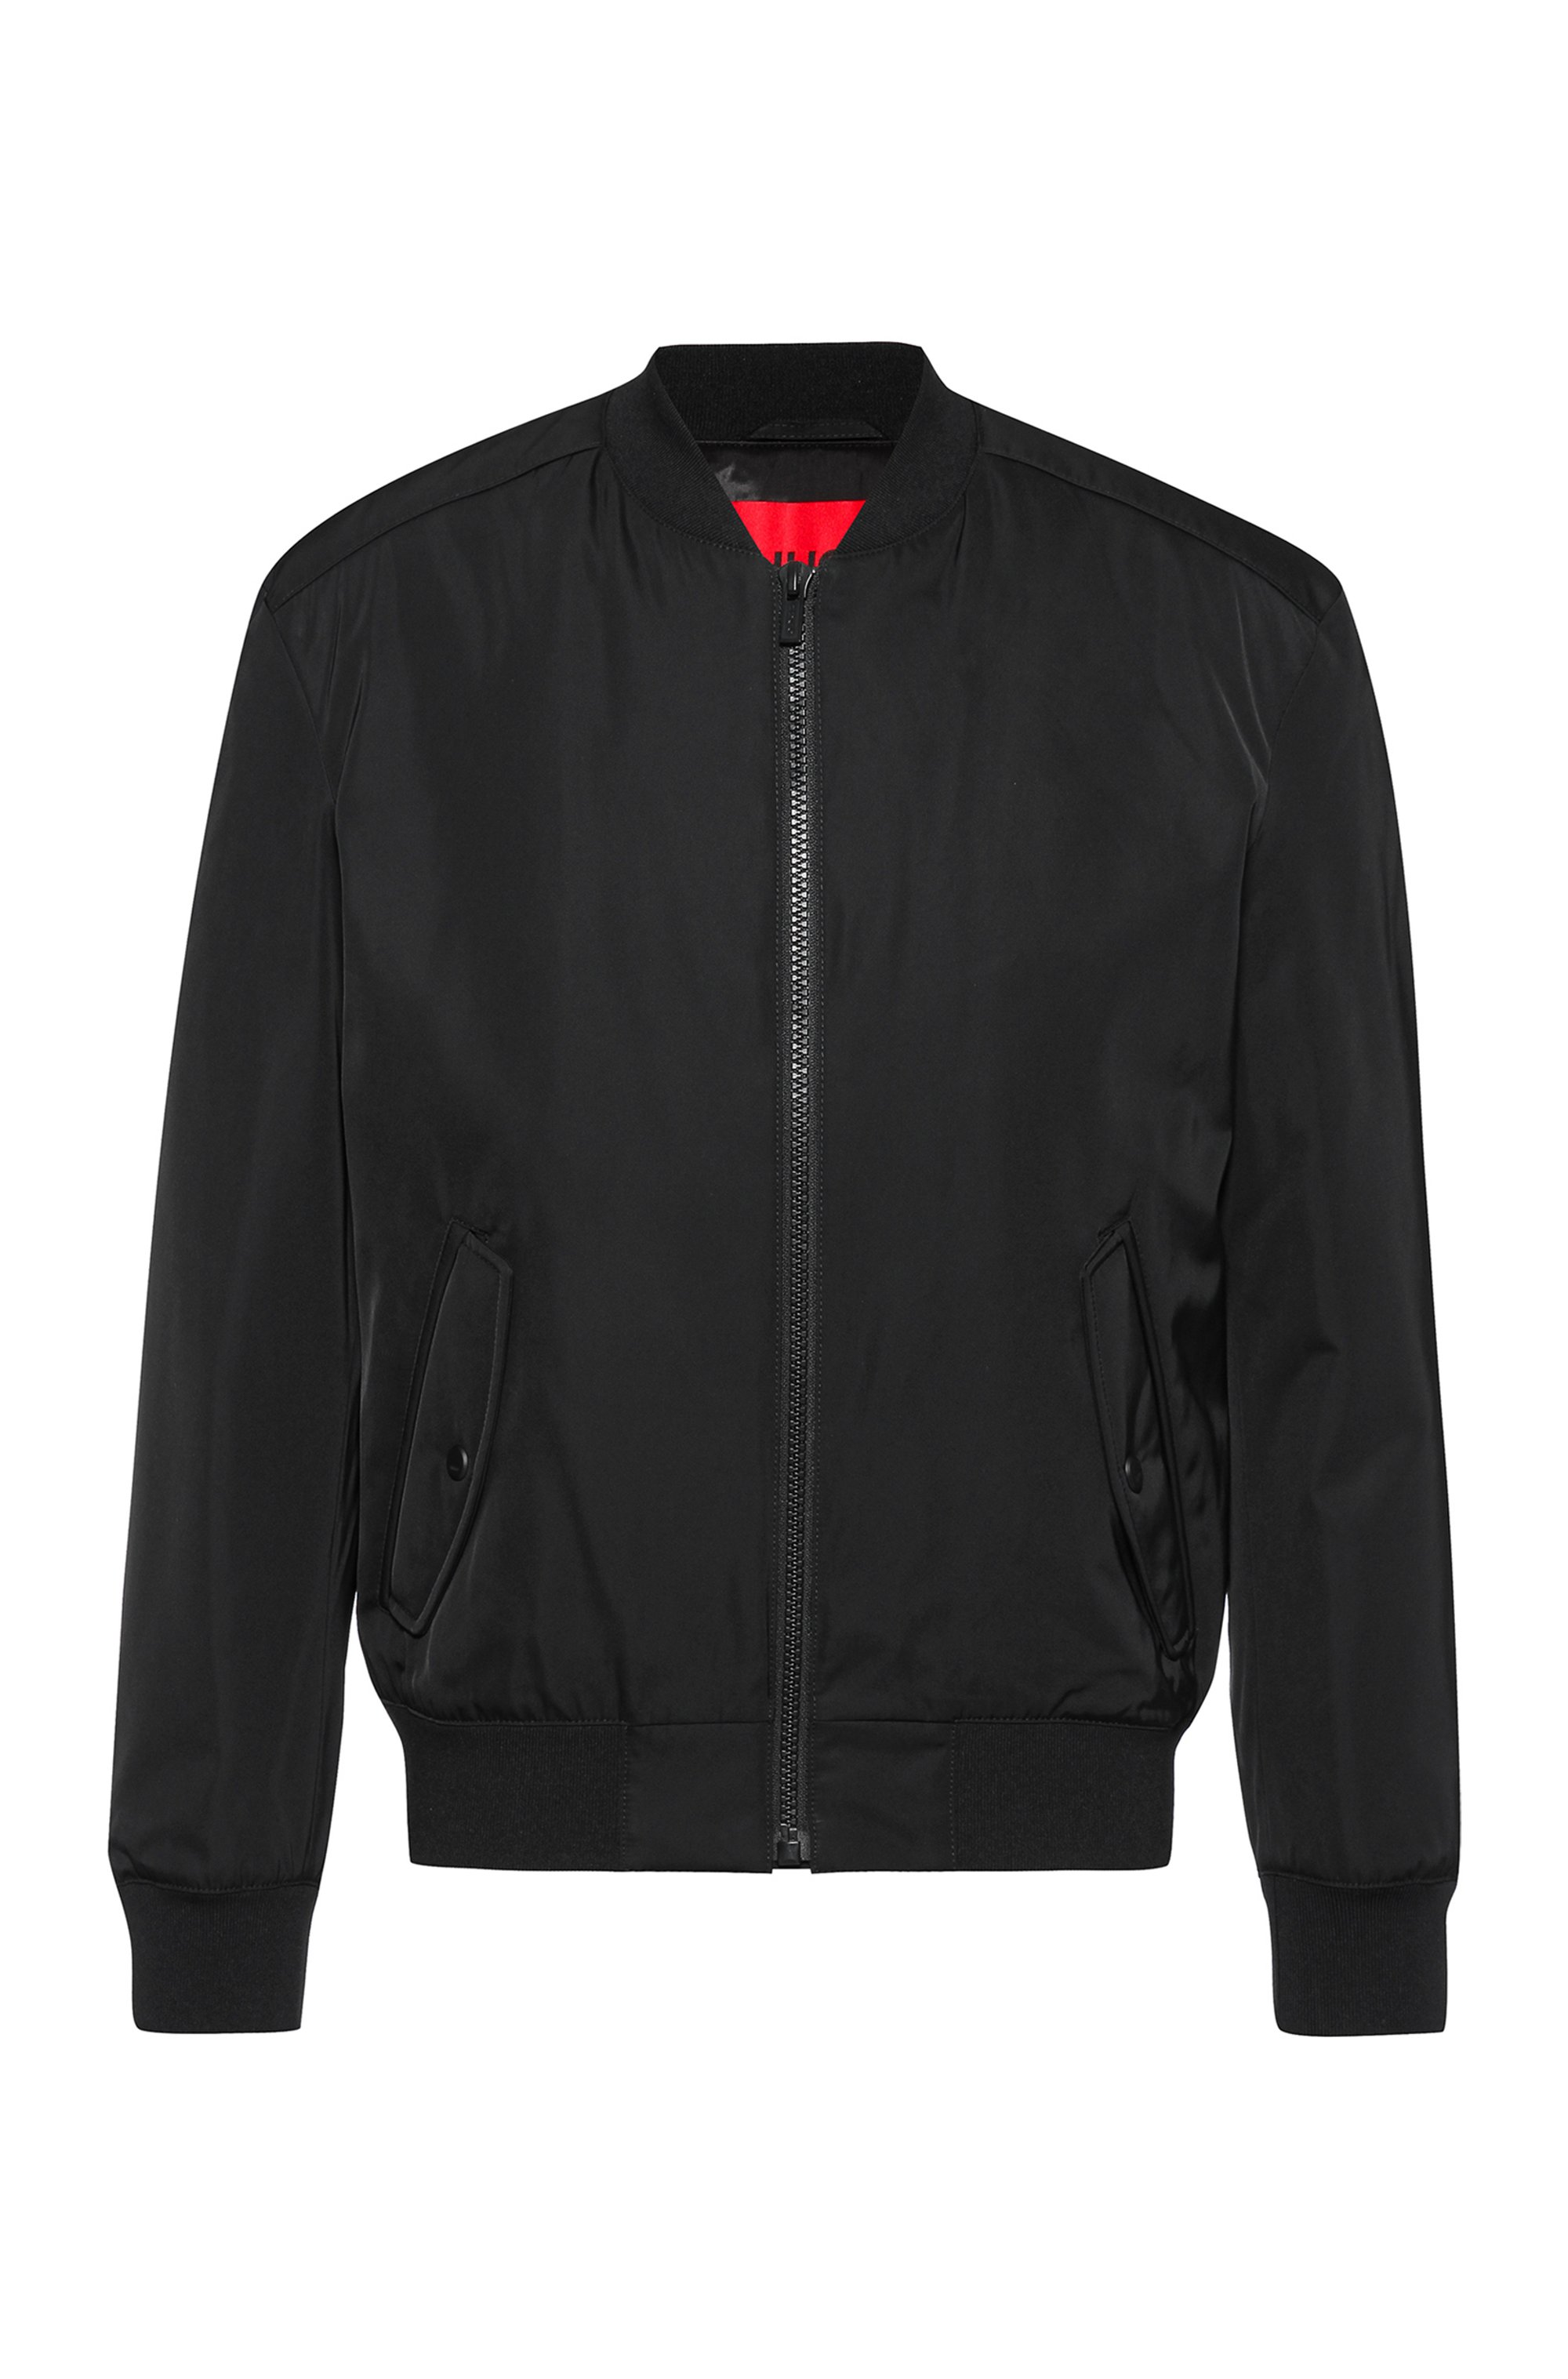 Regular-fit bomber jacket with red logo label, Black